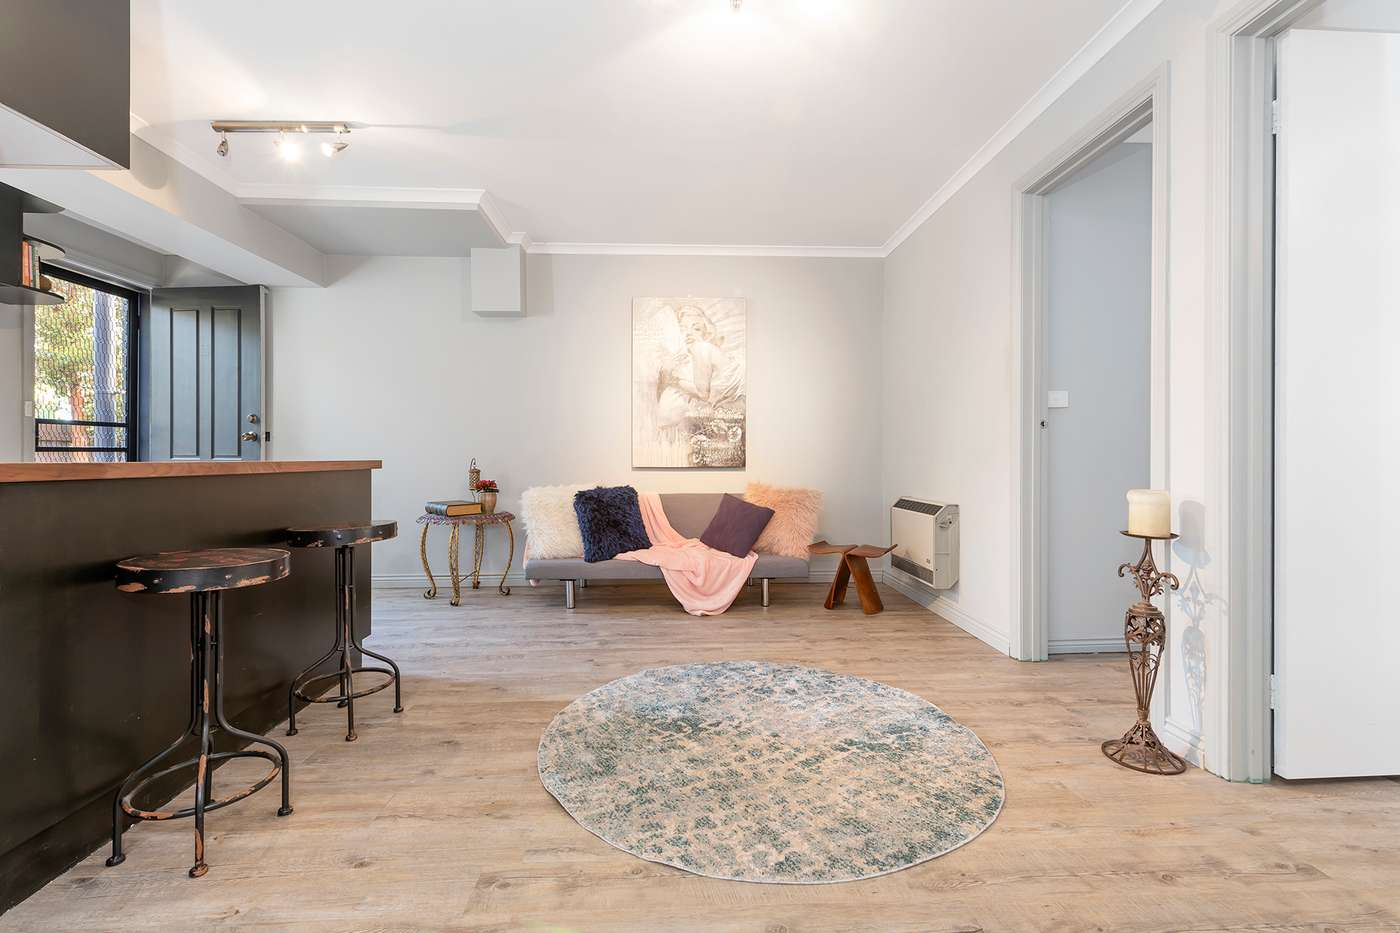 Main view of Homely apartment listing, 11/815 Park Street, Brunswick, VIC 3056